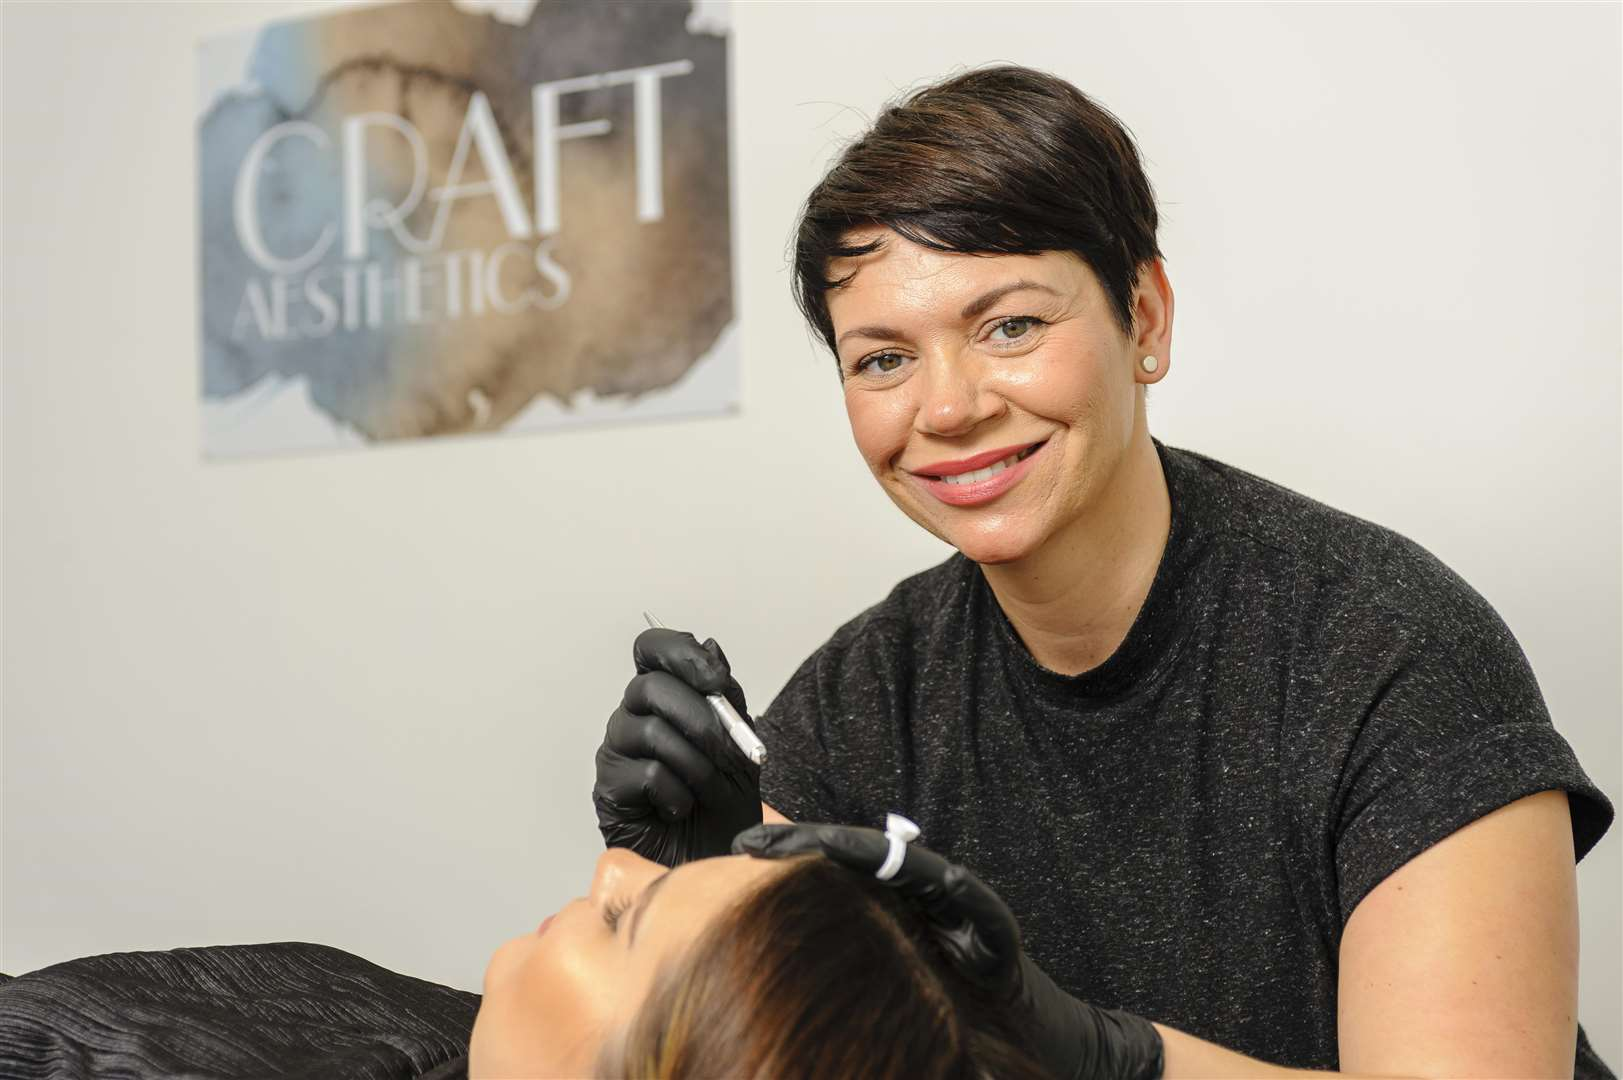 A NATURAL: Andrea Orton of Craft Aesthetics in Diss, who's offering microblading. Picture by Mark Bullimore.